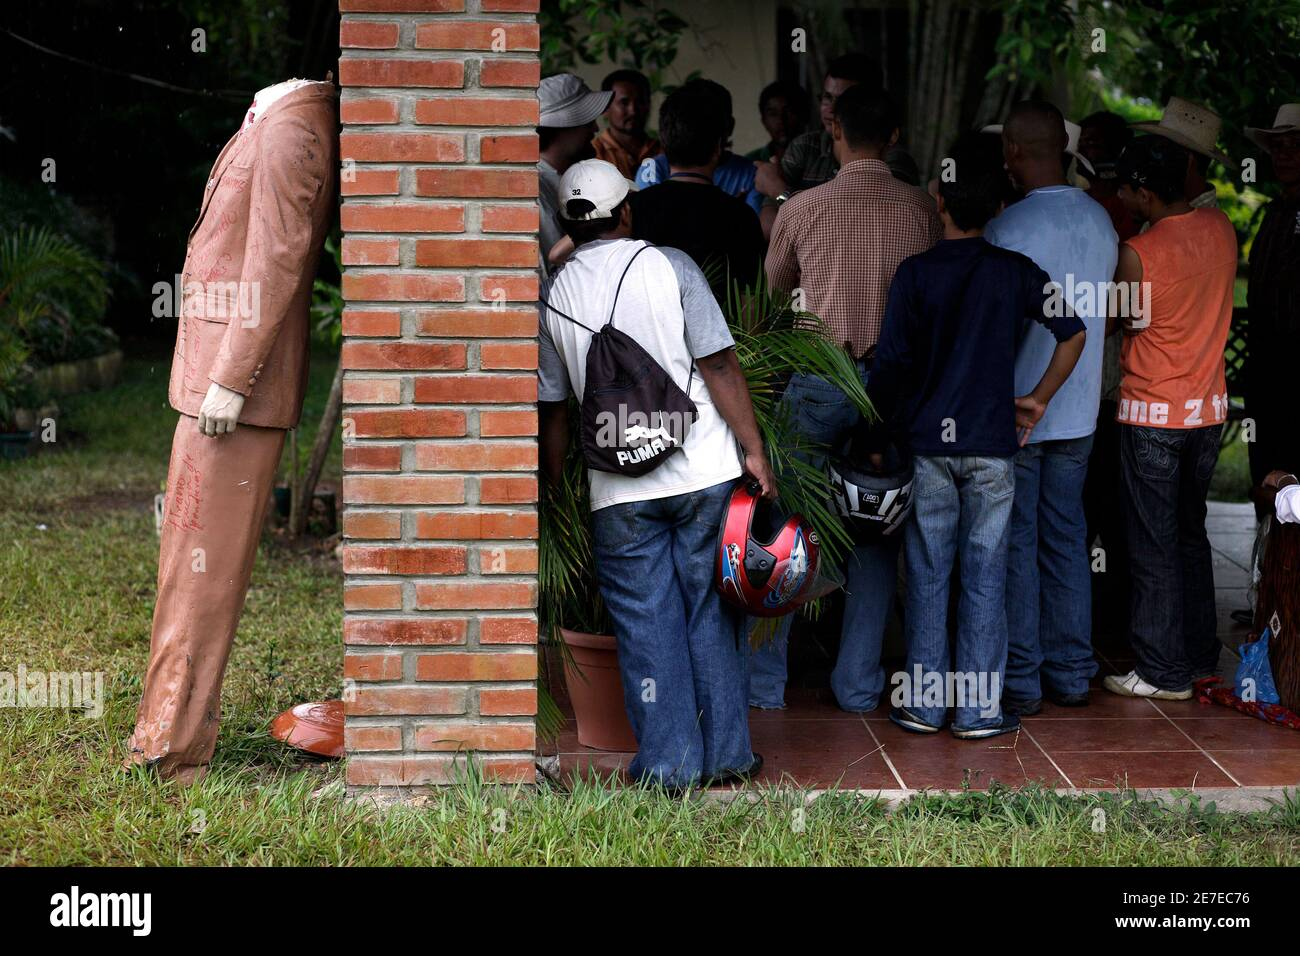 Supporters of Honduras' ousted President Manuel Zelaya gather at his ranch in Catacamas July 21, 2009. Picture taken July 21, 2009.  REUTERS/Daniel LeClair   (HONDURAS CONFLICT POLITICS) Stock Photo